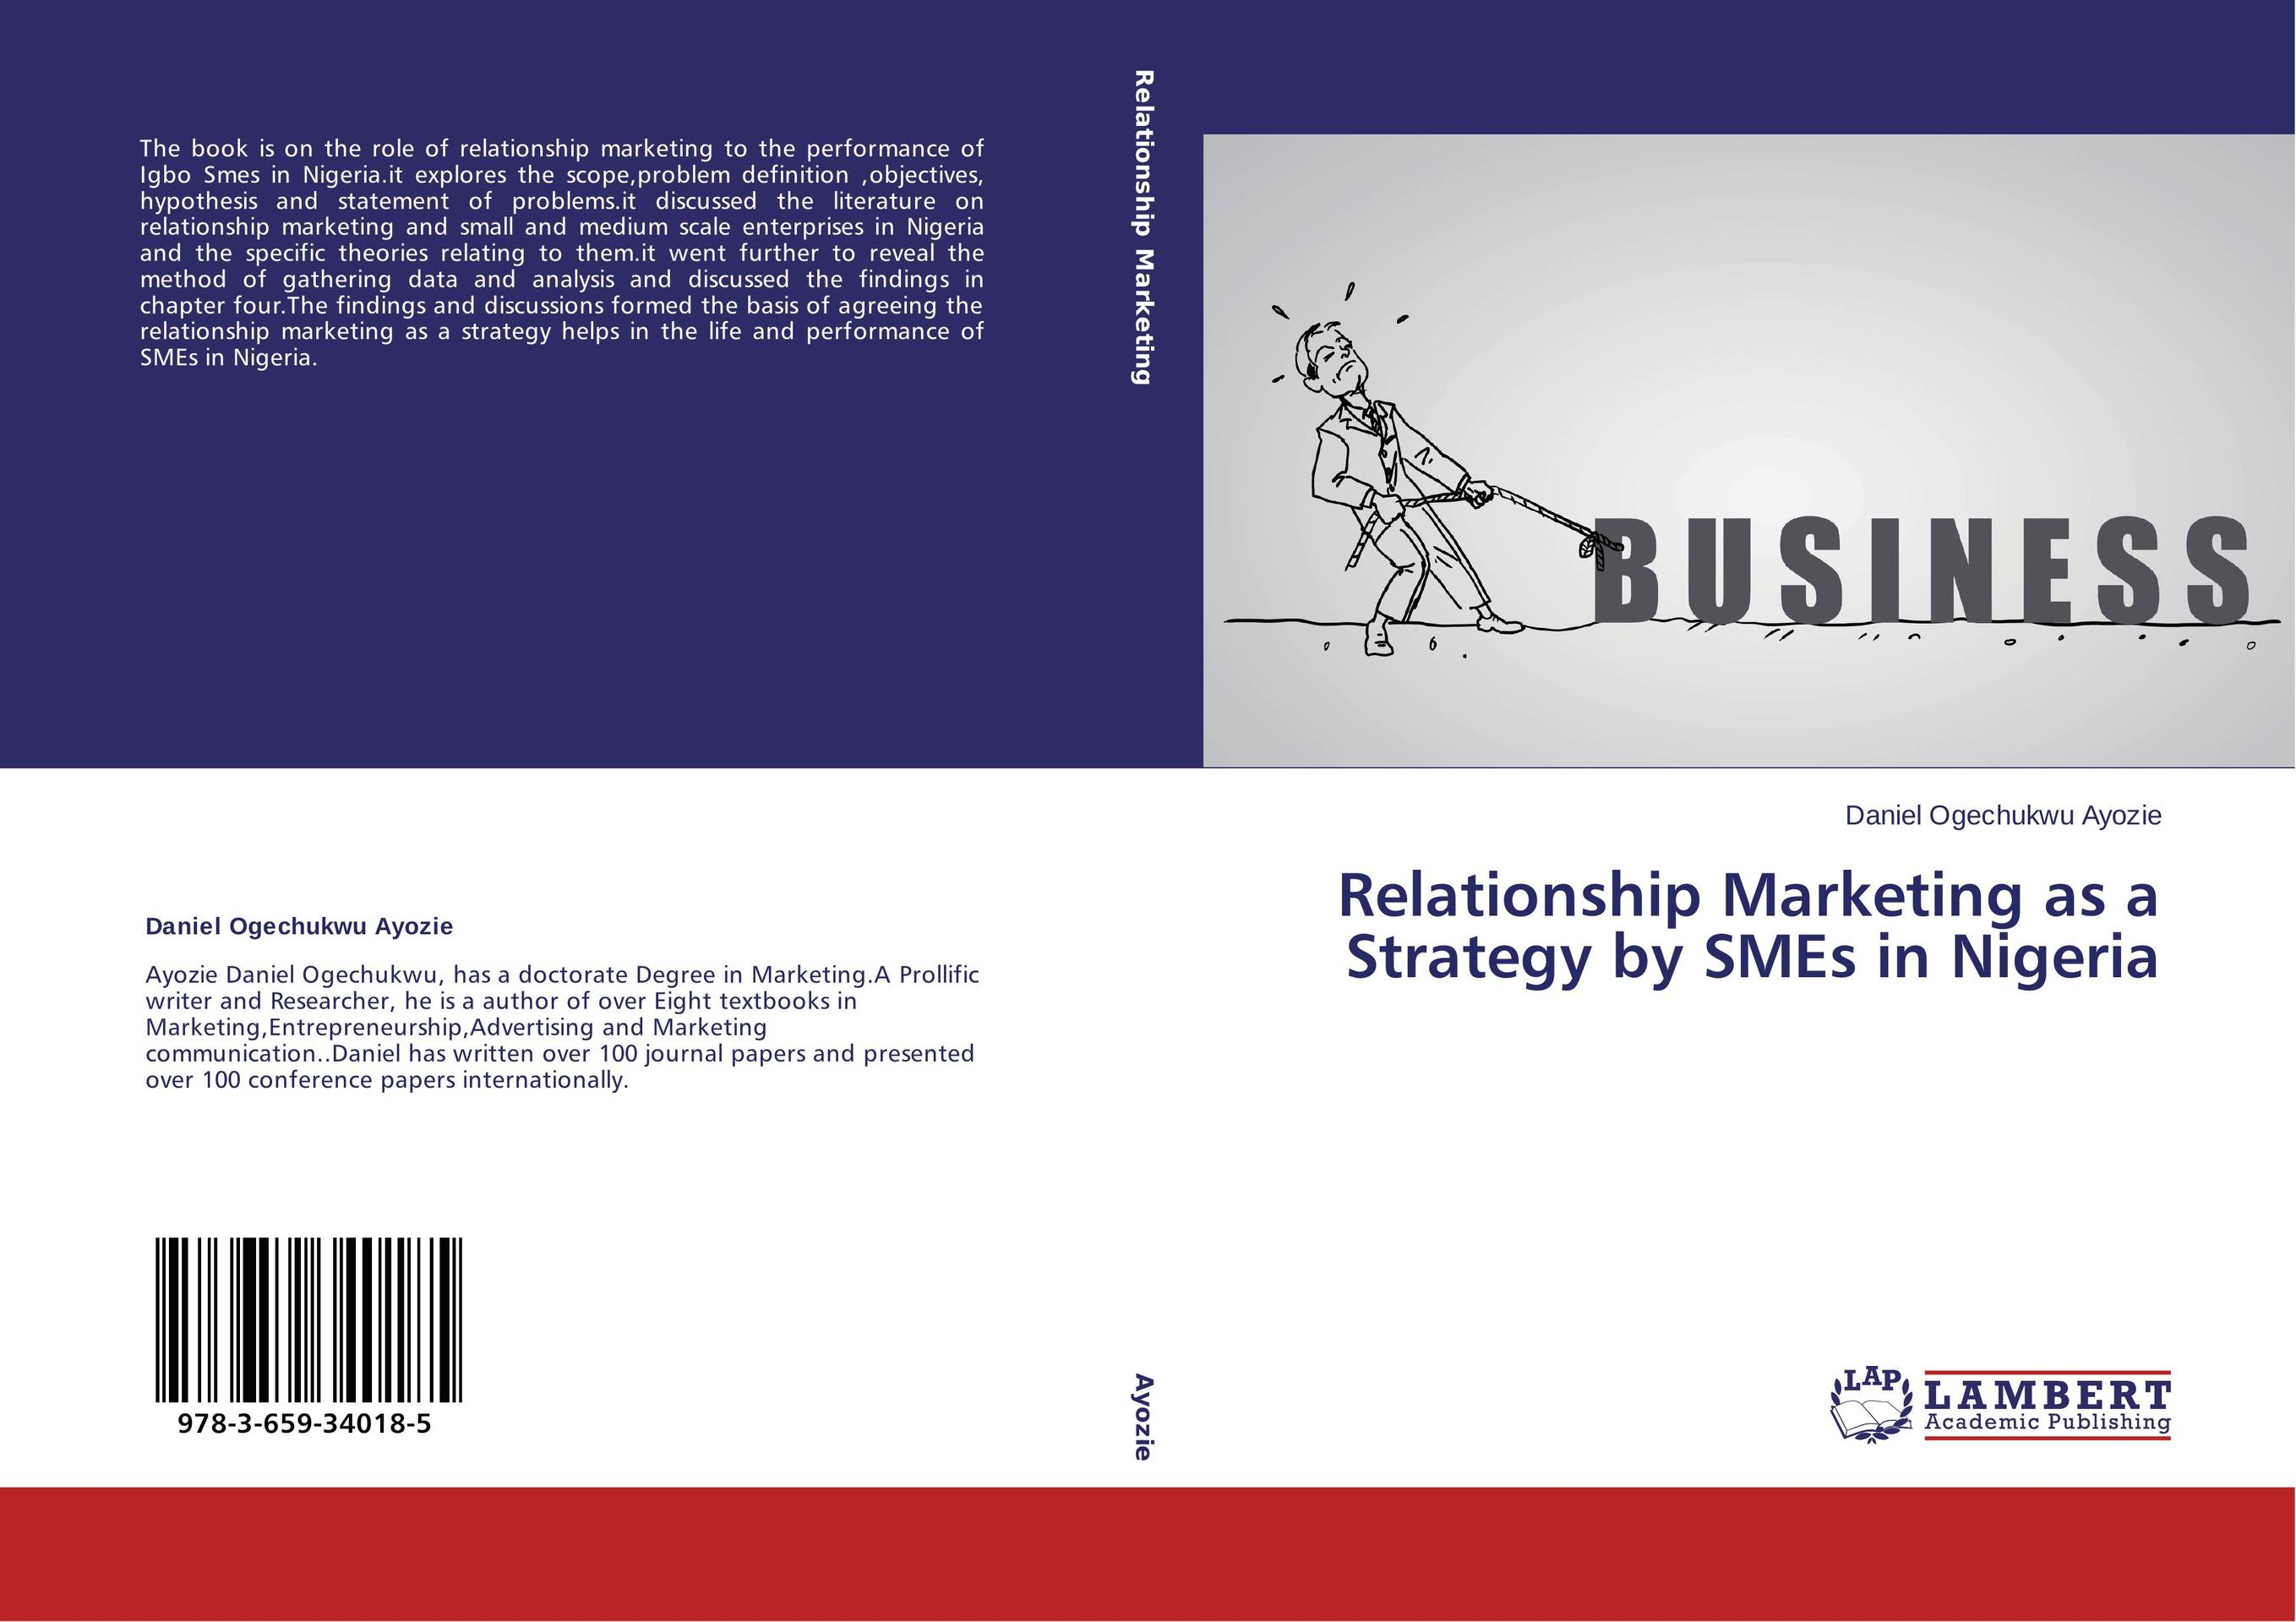 strategic marketing the role of relationship In this article we will look at 1) role of promotion in the marketing mix, 2) objectives of promotional activities, 3) major targets of promotional campaigns, 4) the promotional mix, 5) types of promotional strategies, 6) managing promotion through the product life cycle, and 7) an example of the promotion mix in action.